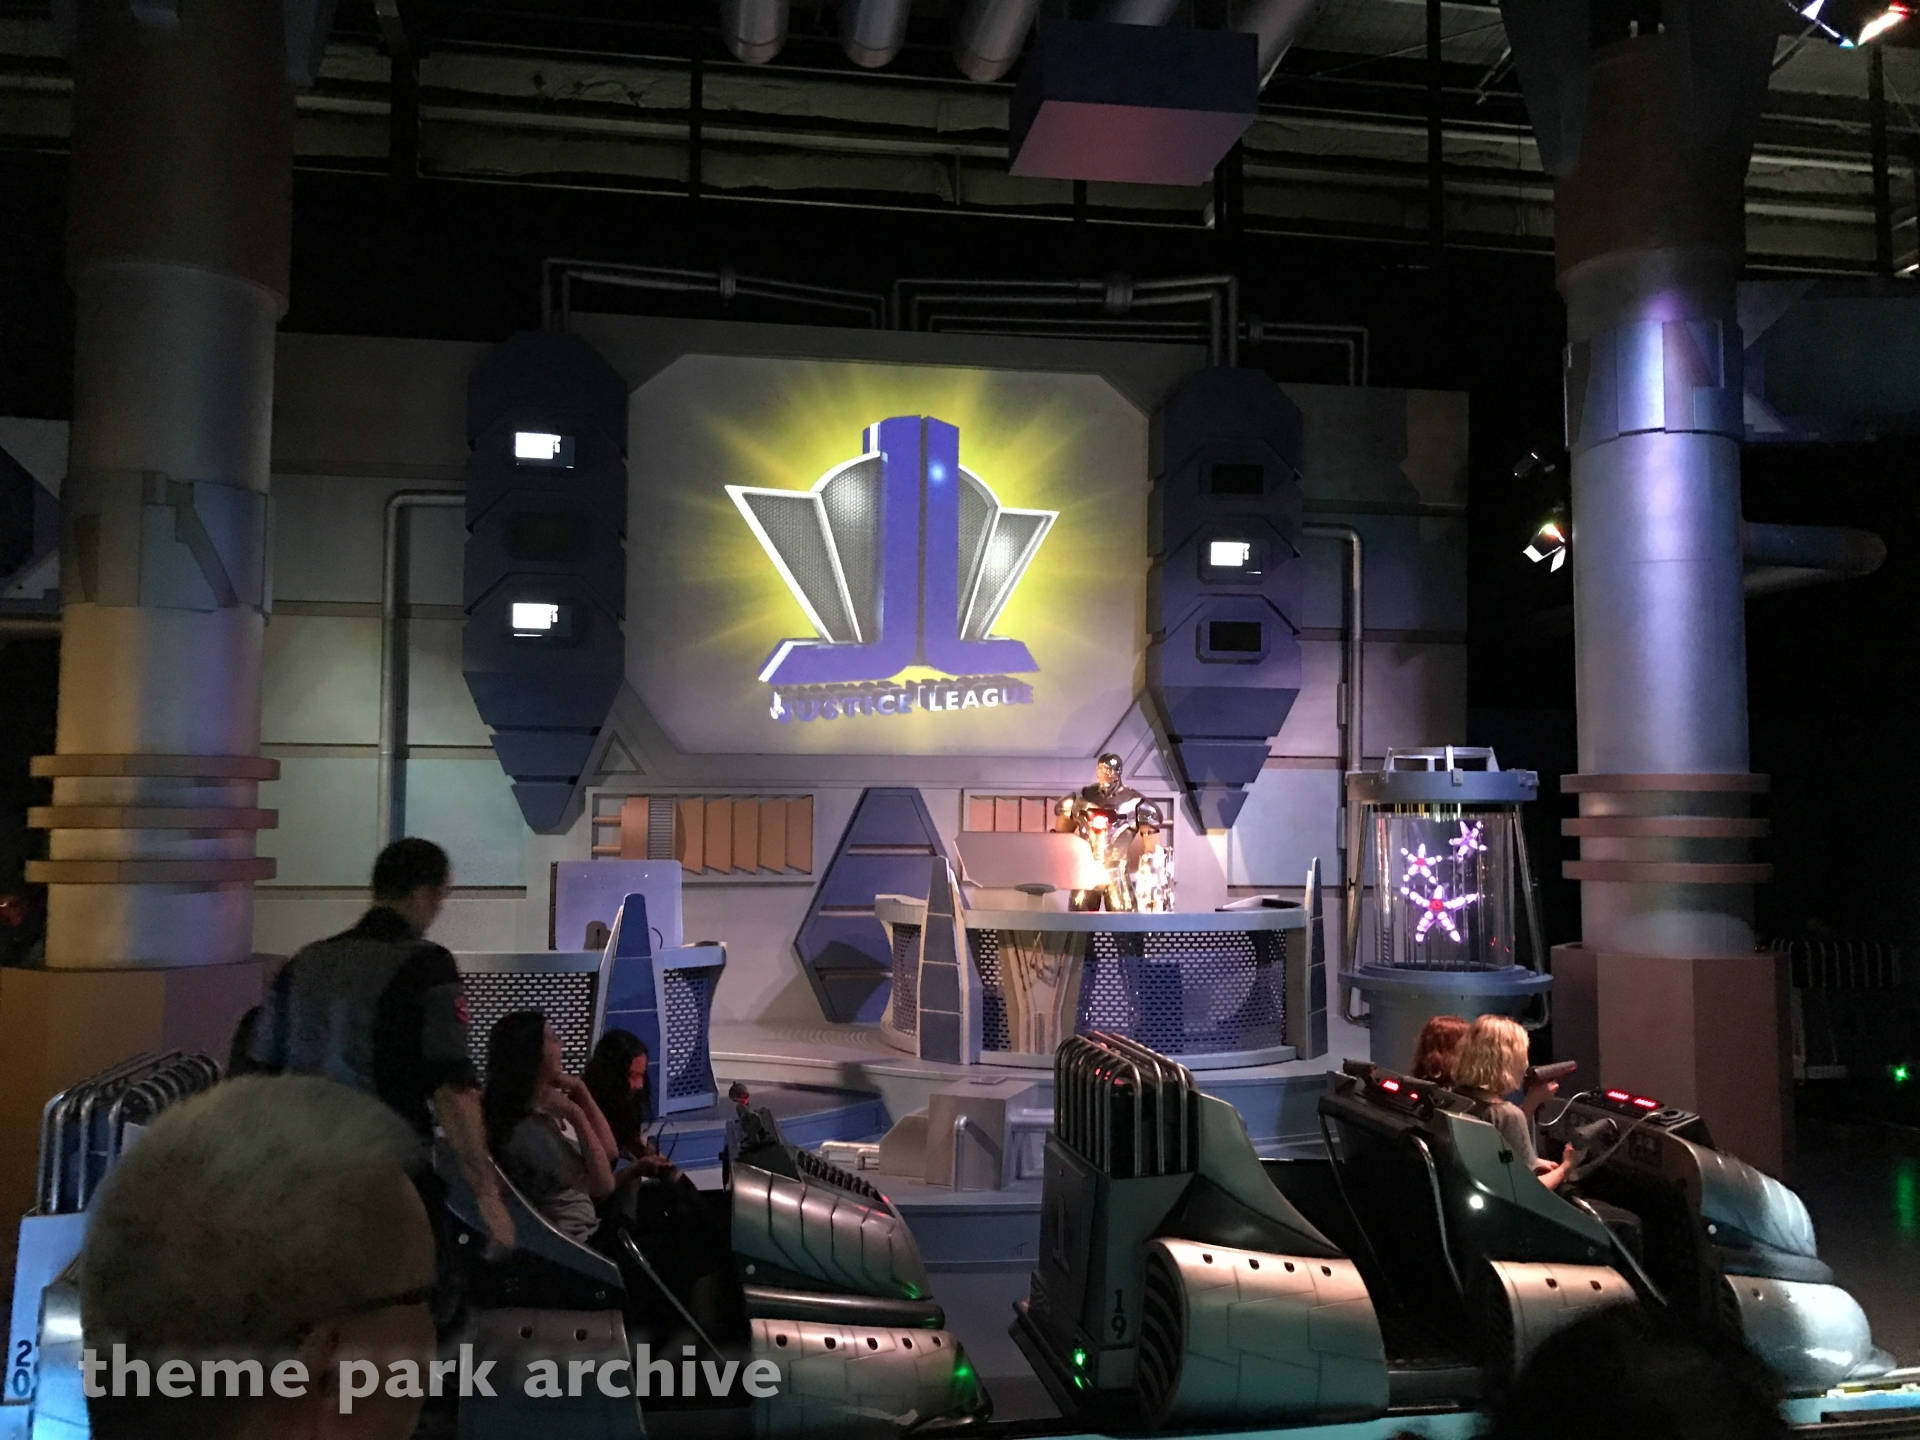 Justice League 3D The Ride at Warner Bros. Movie World